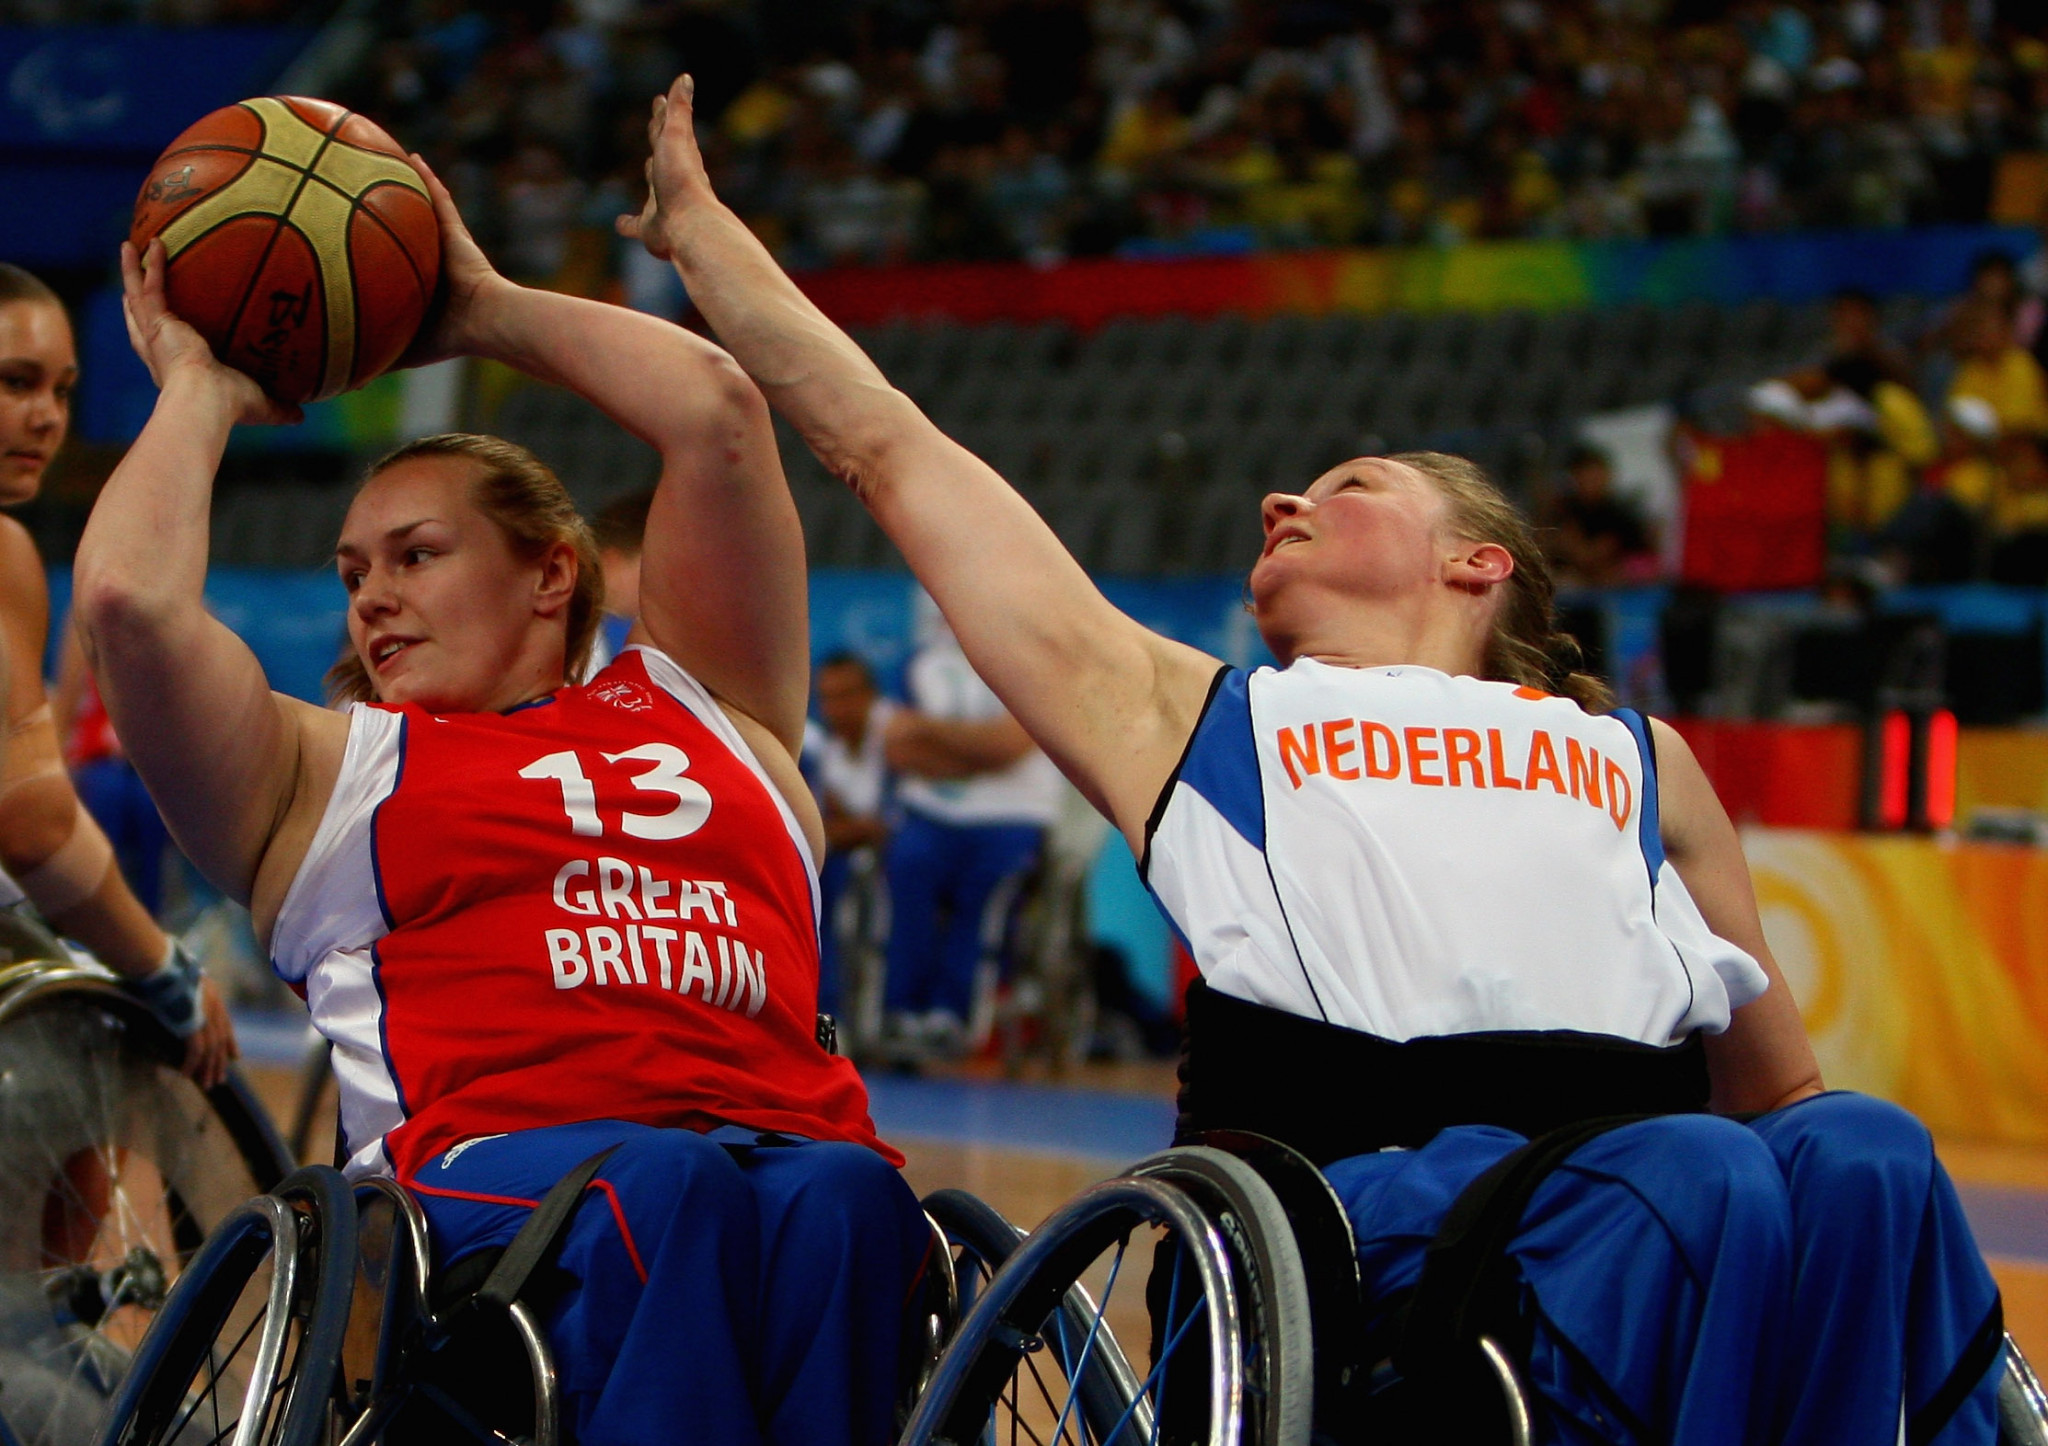 Barbara van Bergen made her Paralympic debut with the Dutch wheelchair basketball team at Beijing 2008 ©Getty Images